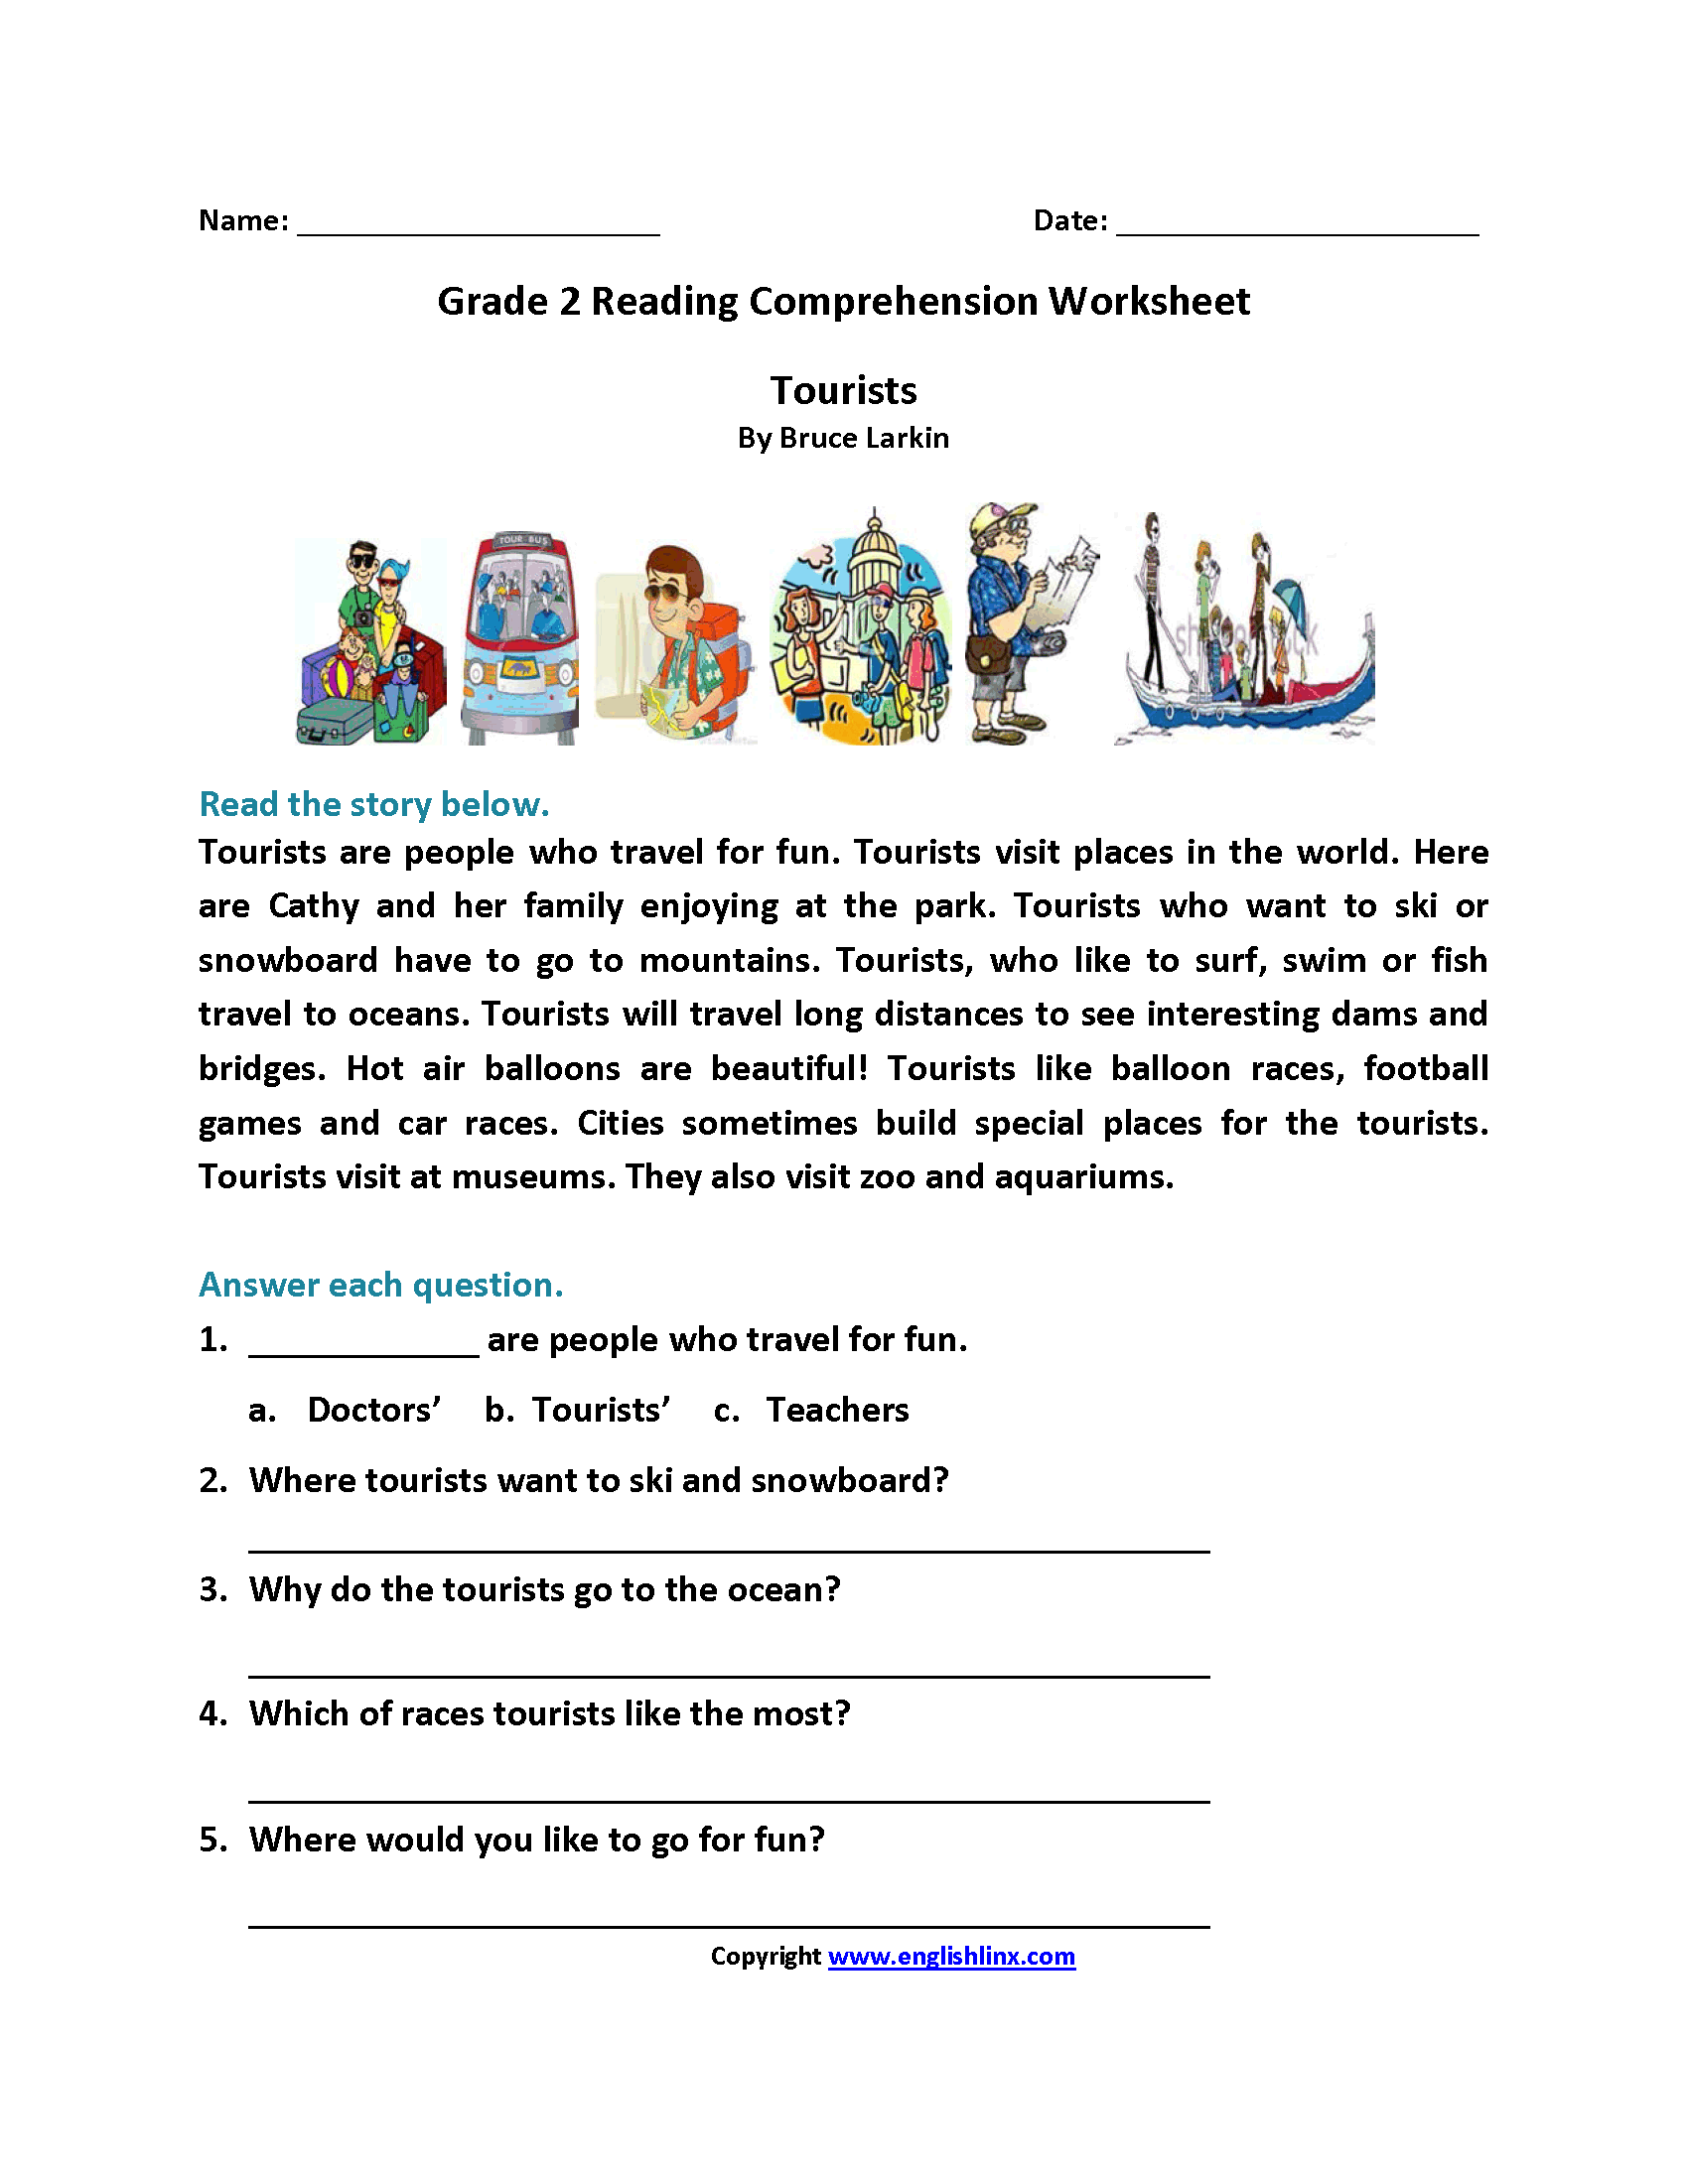 Reading Comprehension Worksheet Grade 2